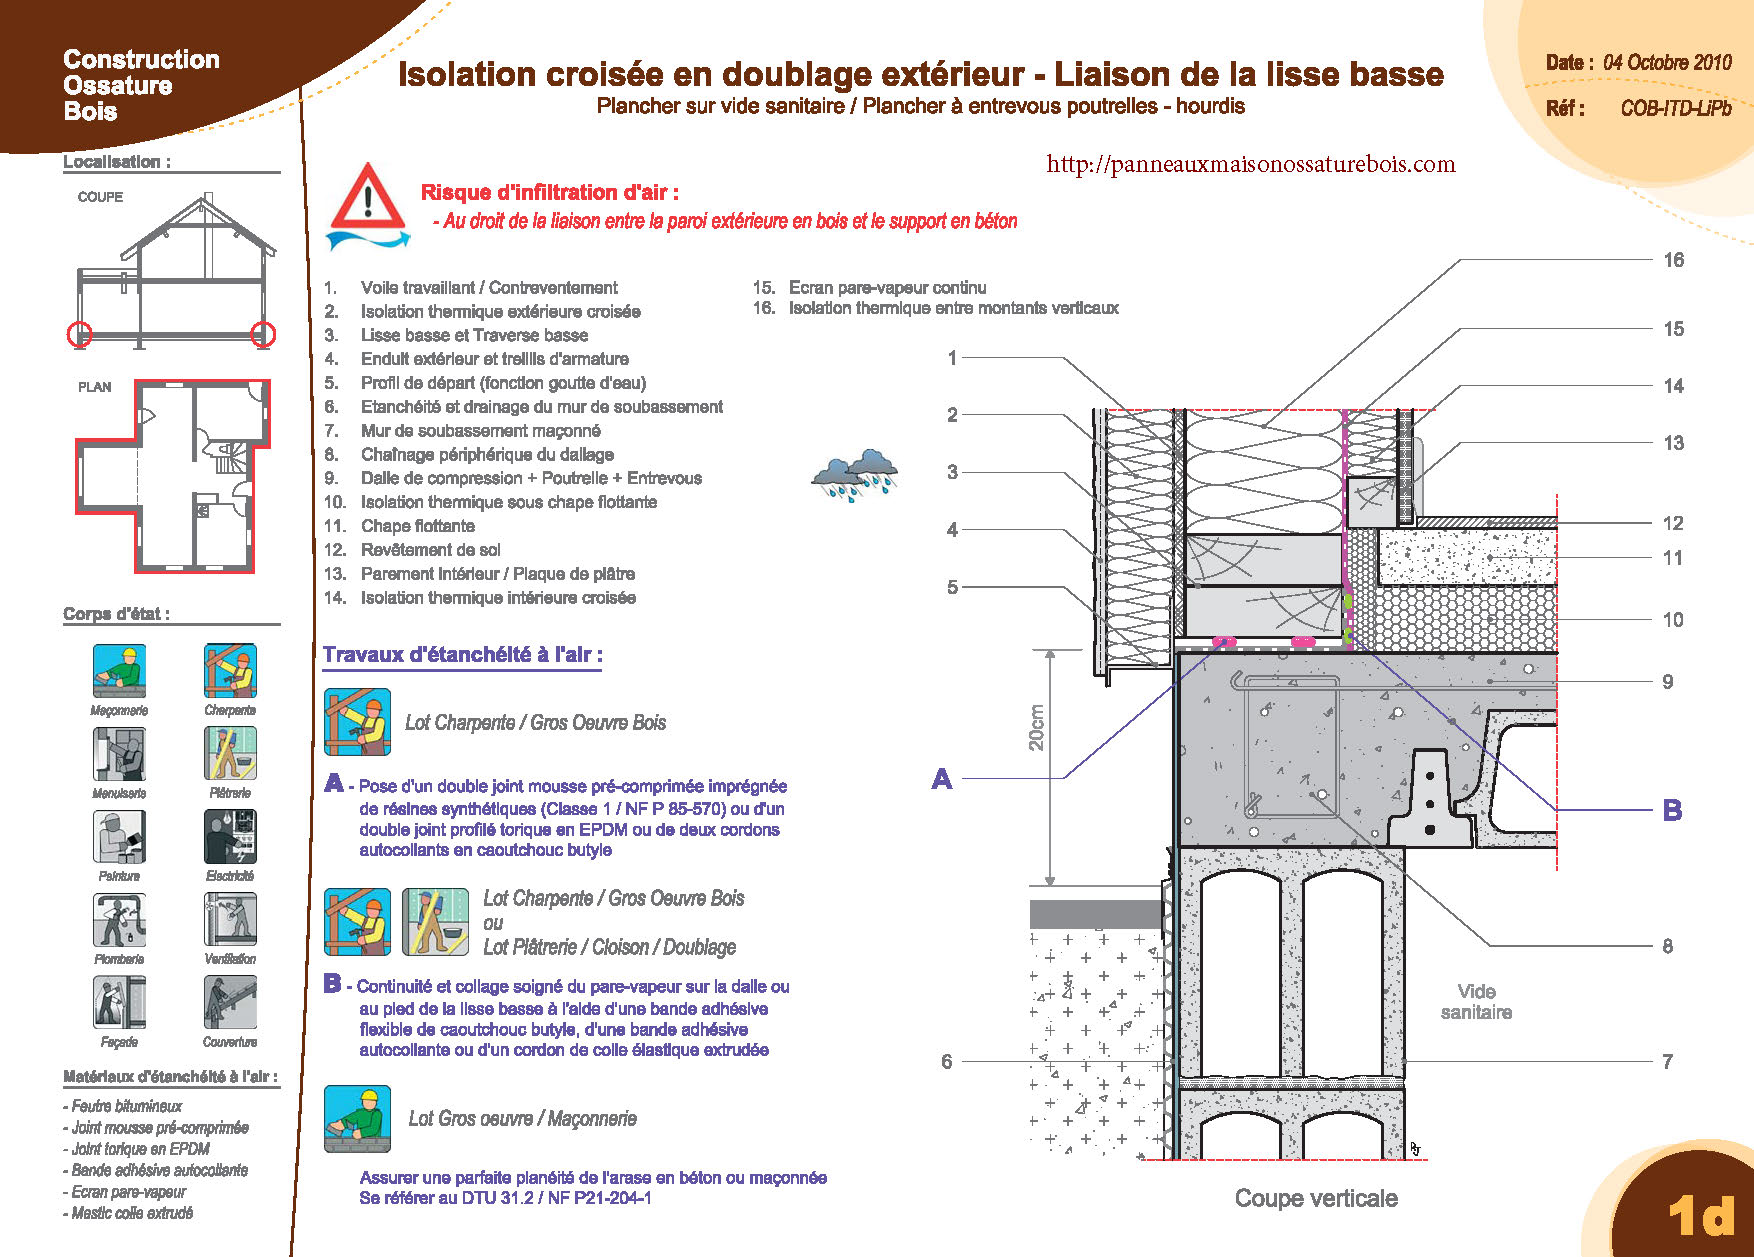 coupes construtions ossature bois complets_Page_09